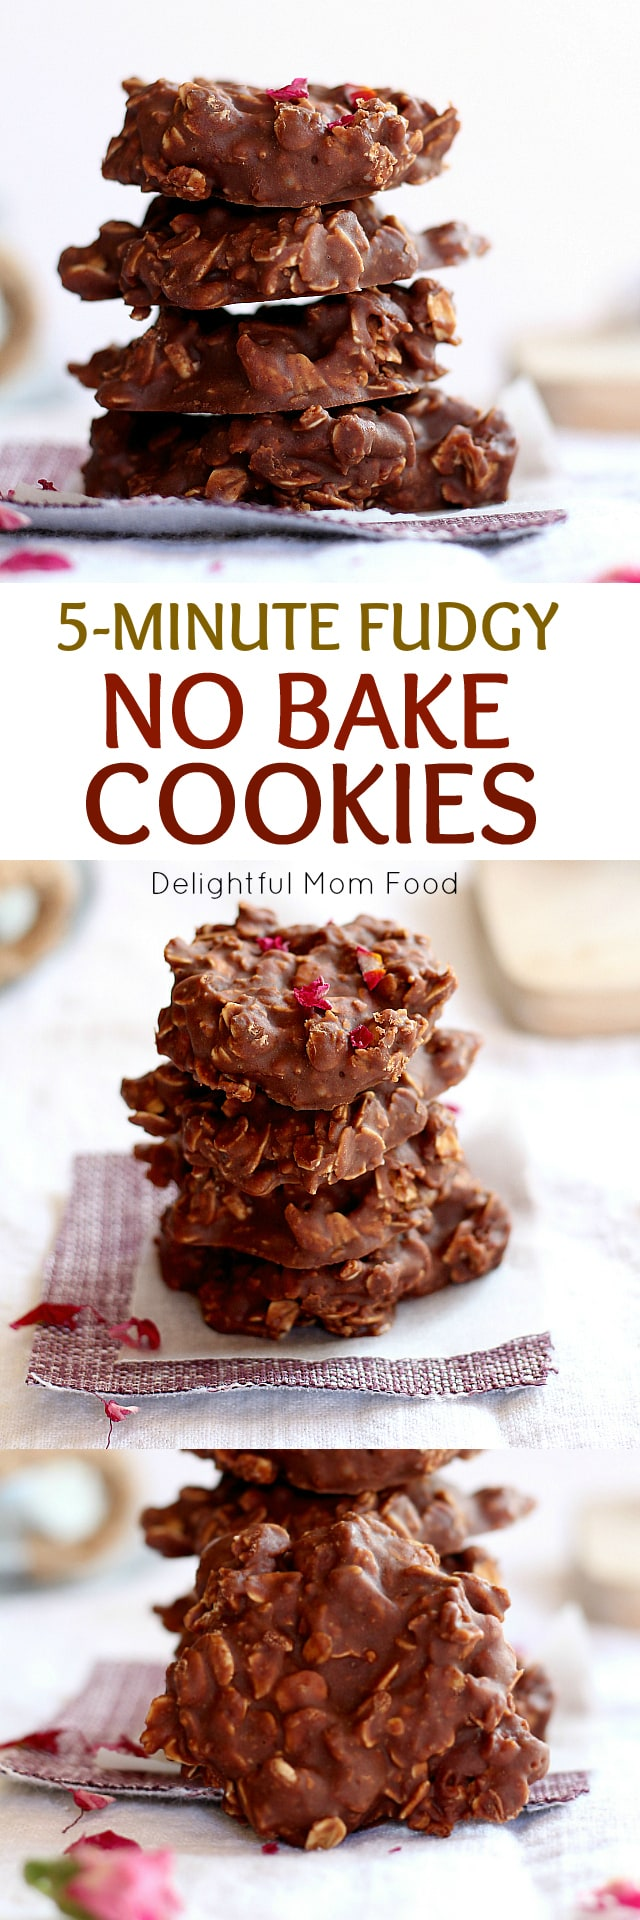 Oatmeal no bake cookies made in less than 5 minutes! Peanut butter protein powder and chocolate make these delicious fudgy and healthy no bake oatmeal cookies a for-sure crowd-pleaser!